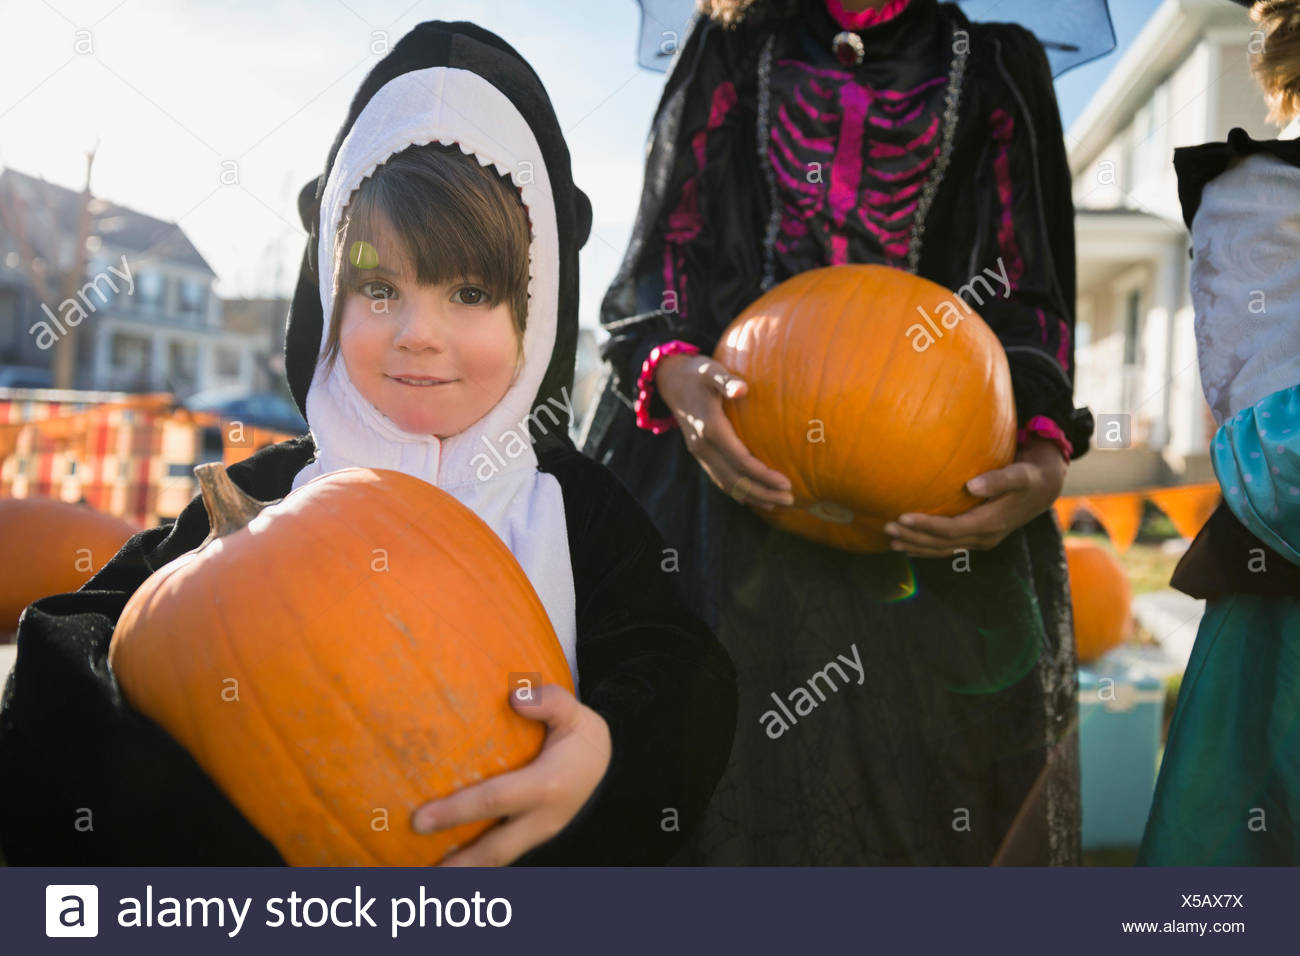 portrait boy in whale halloween costume holding pumpkin stock photo